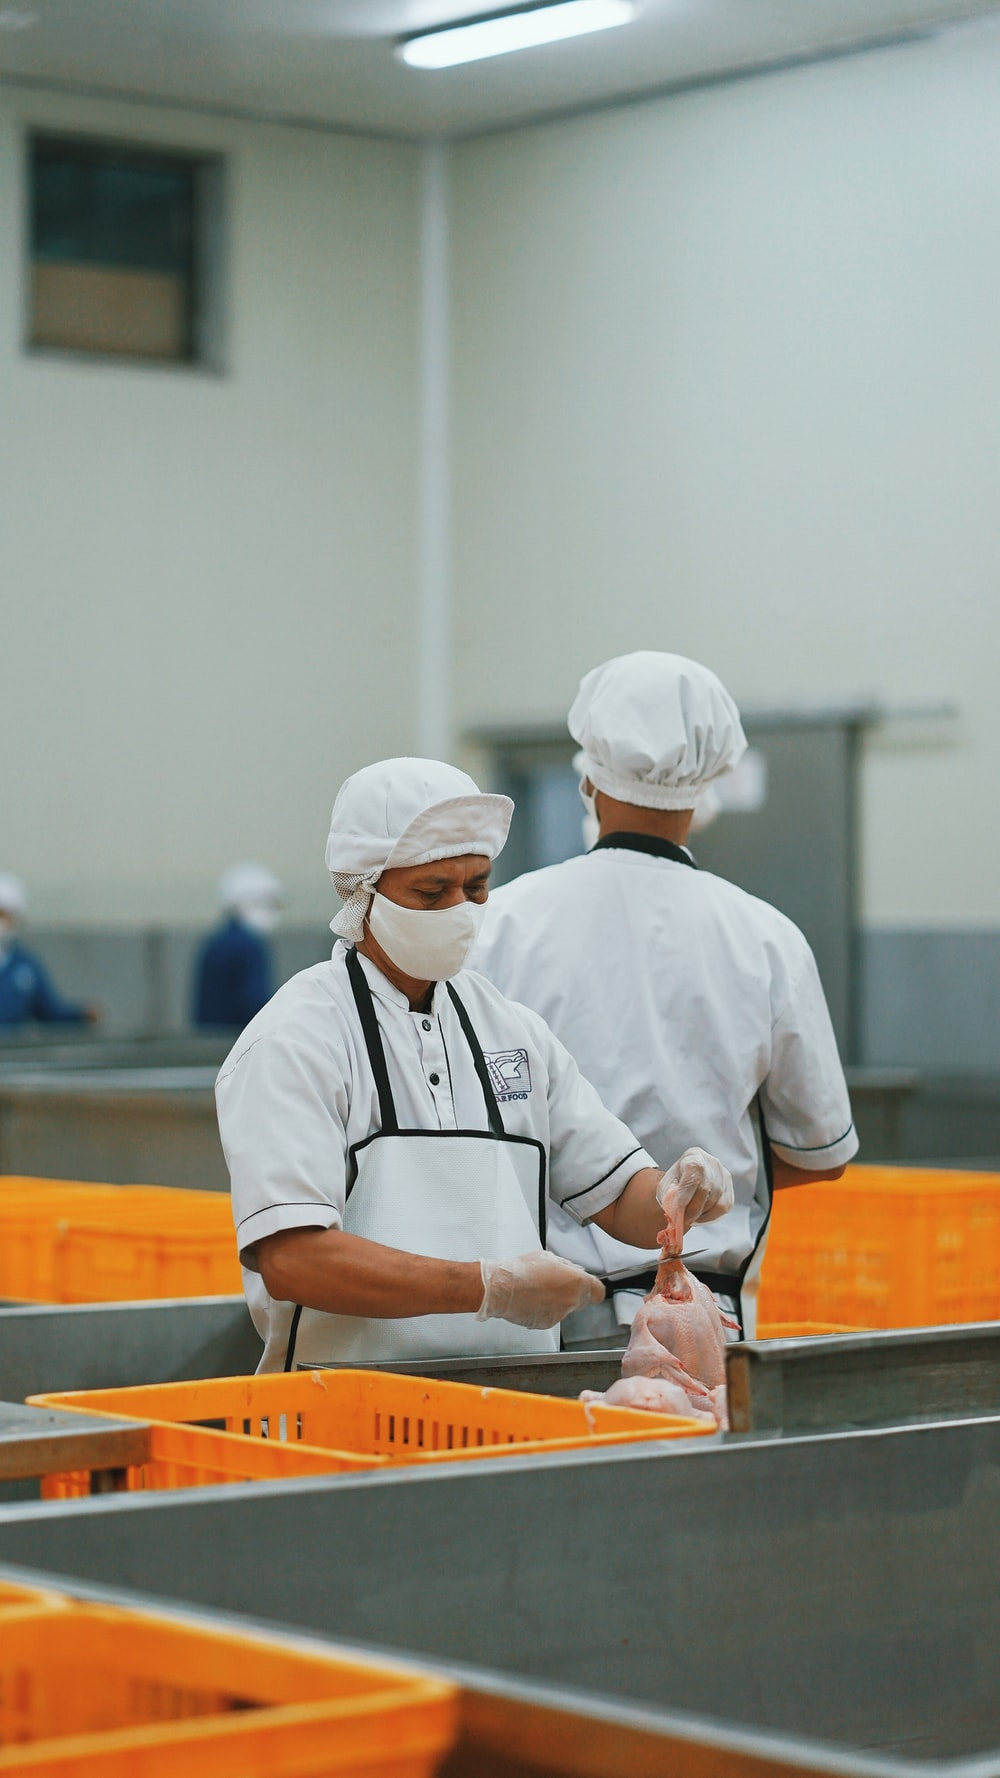 man in white chef uniform holding knife